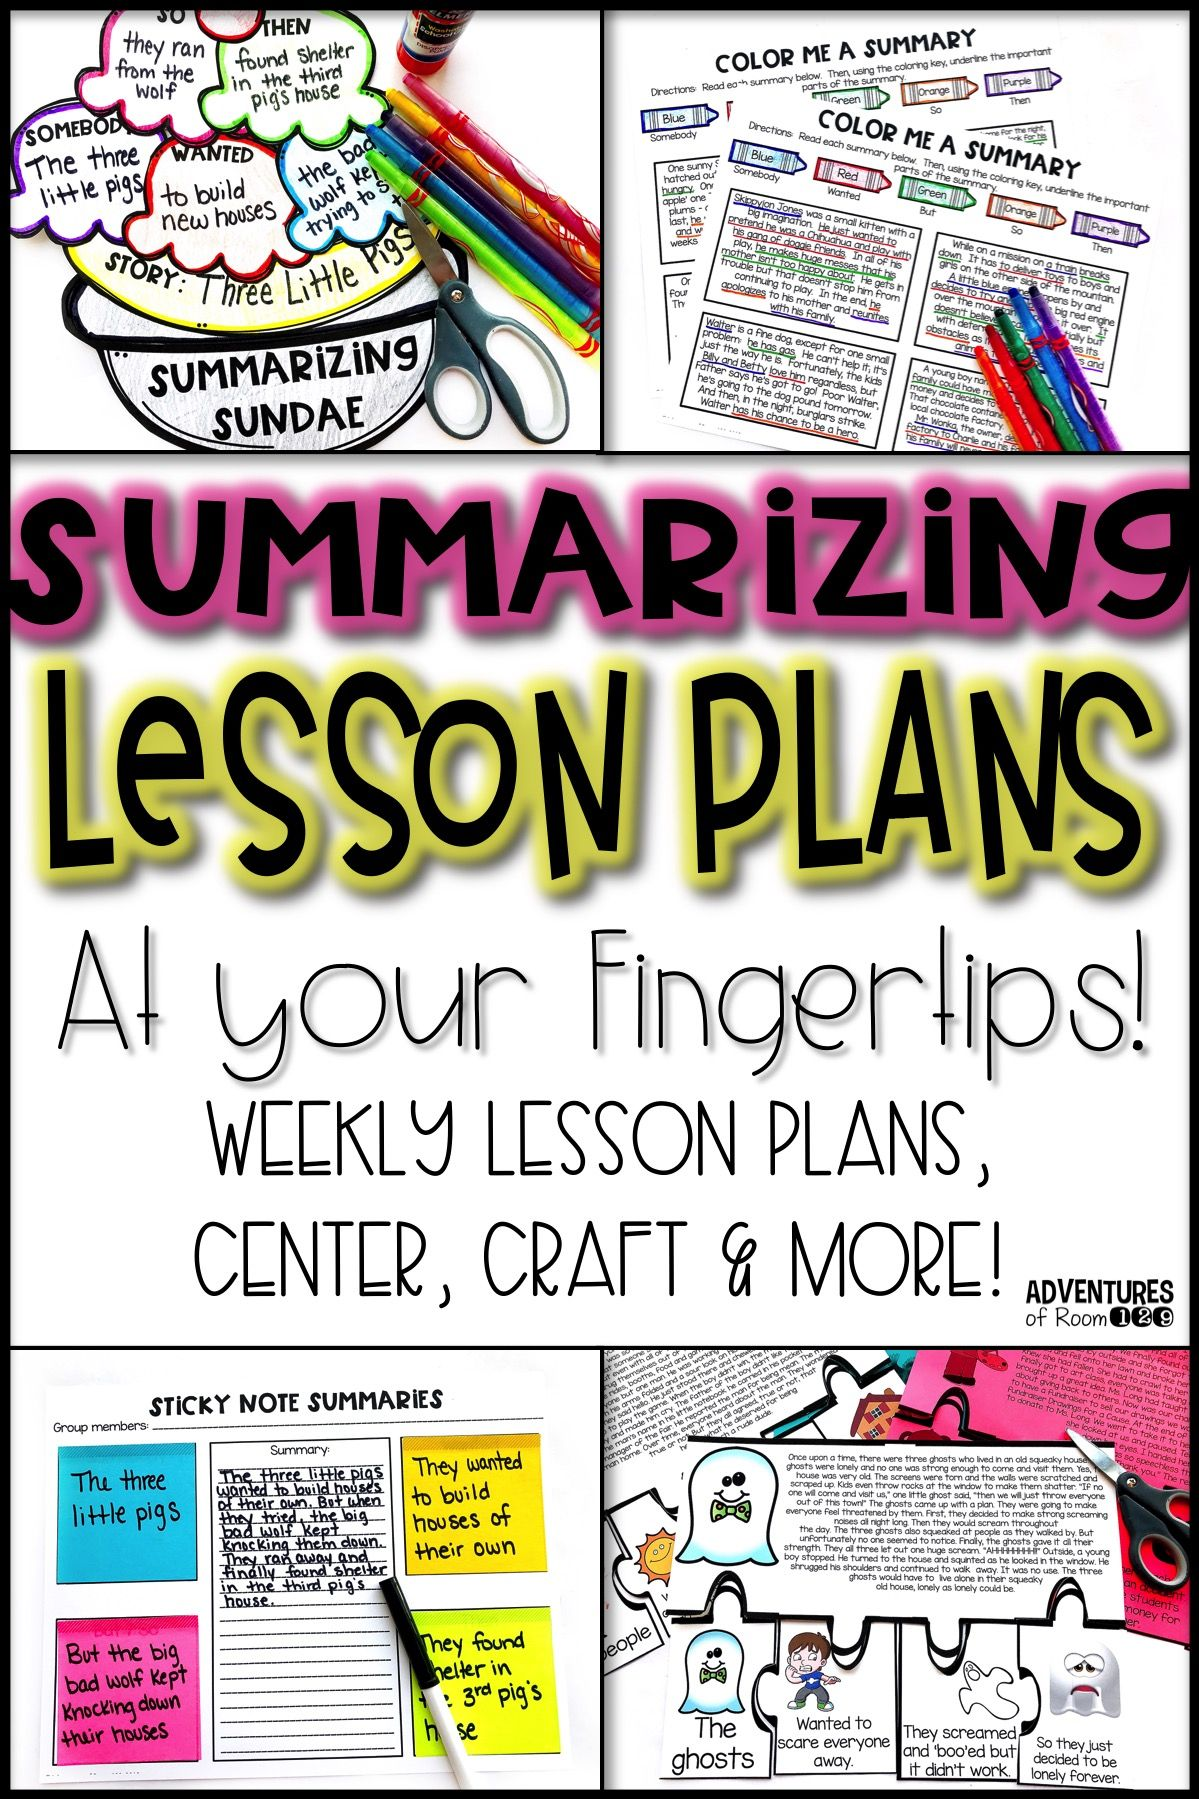 Summarizing Activities And Printables